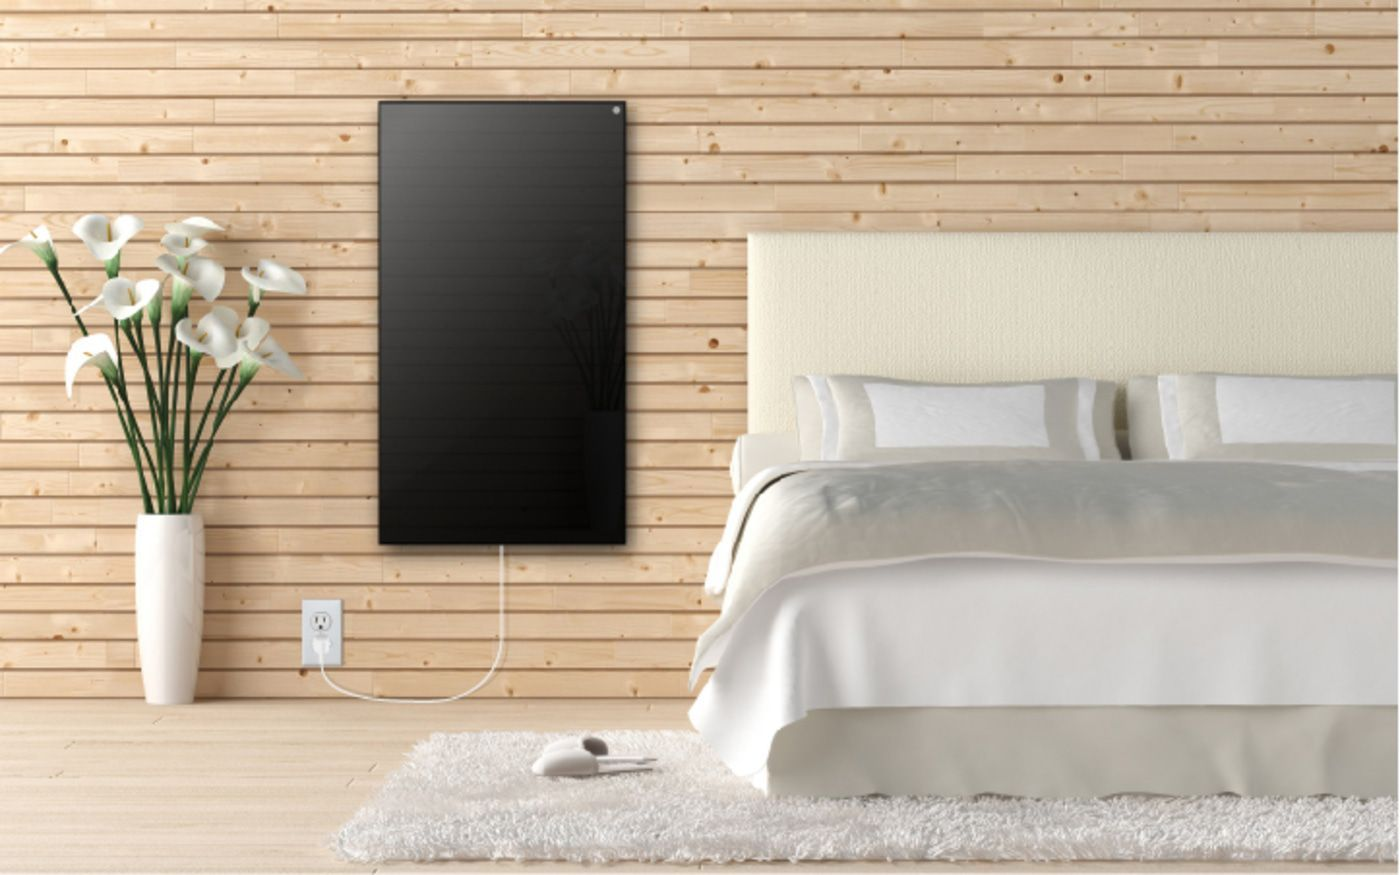 Electric Wall Heaters Radiant Heating Panels Infrared Heating